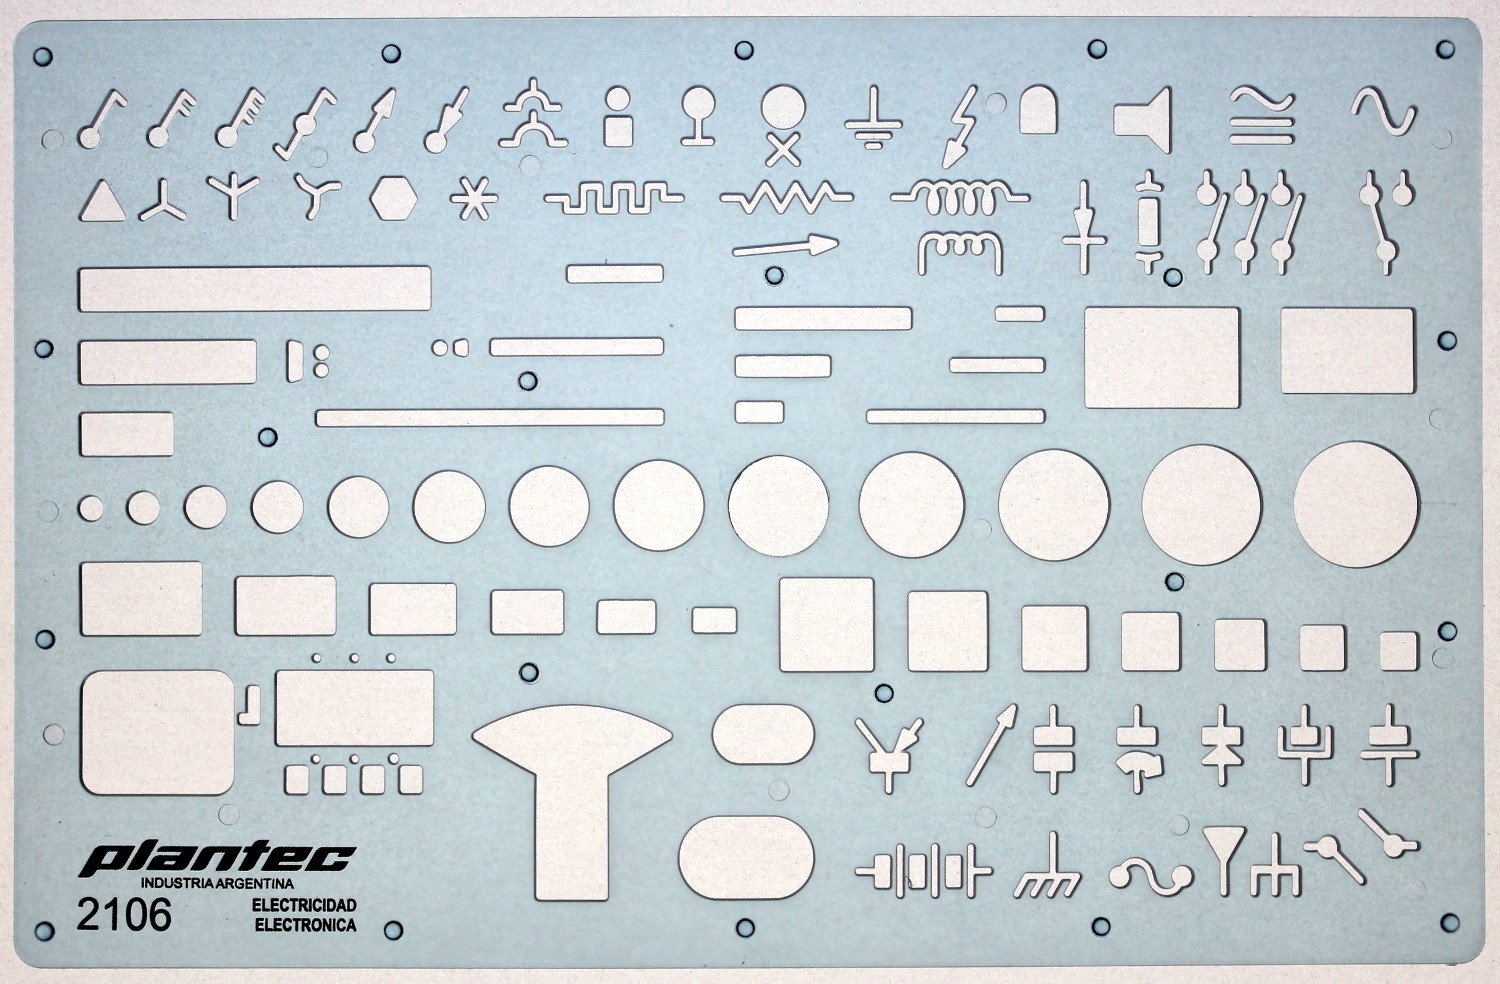 Electrical and electronic installation symbols drawing template electrical and electronic installation symbols drawing template stencil engineering drafting supplies engineering layout plan schematic wiring asfbconference2016 Images